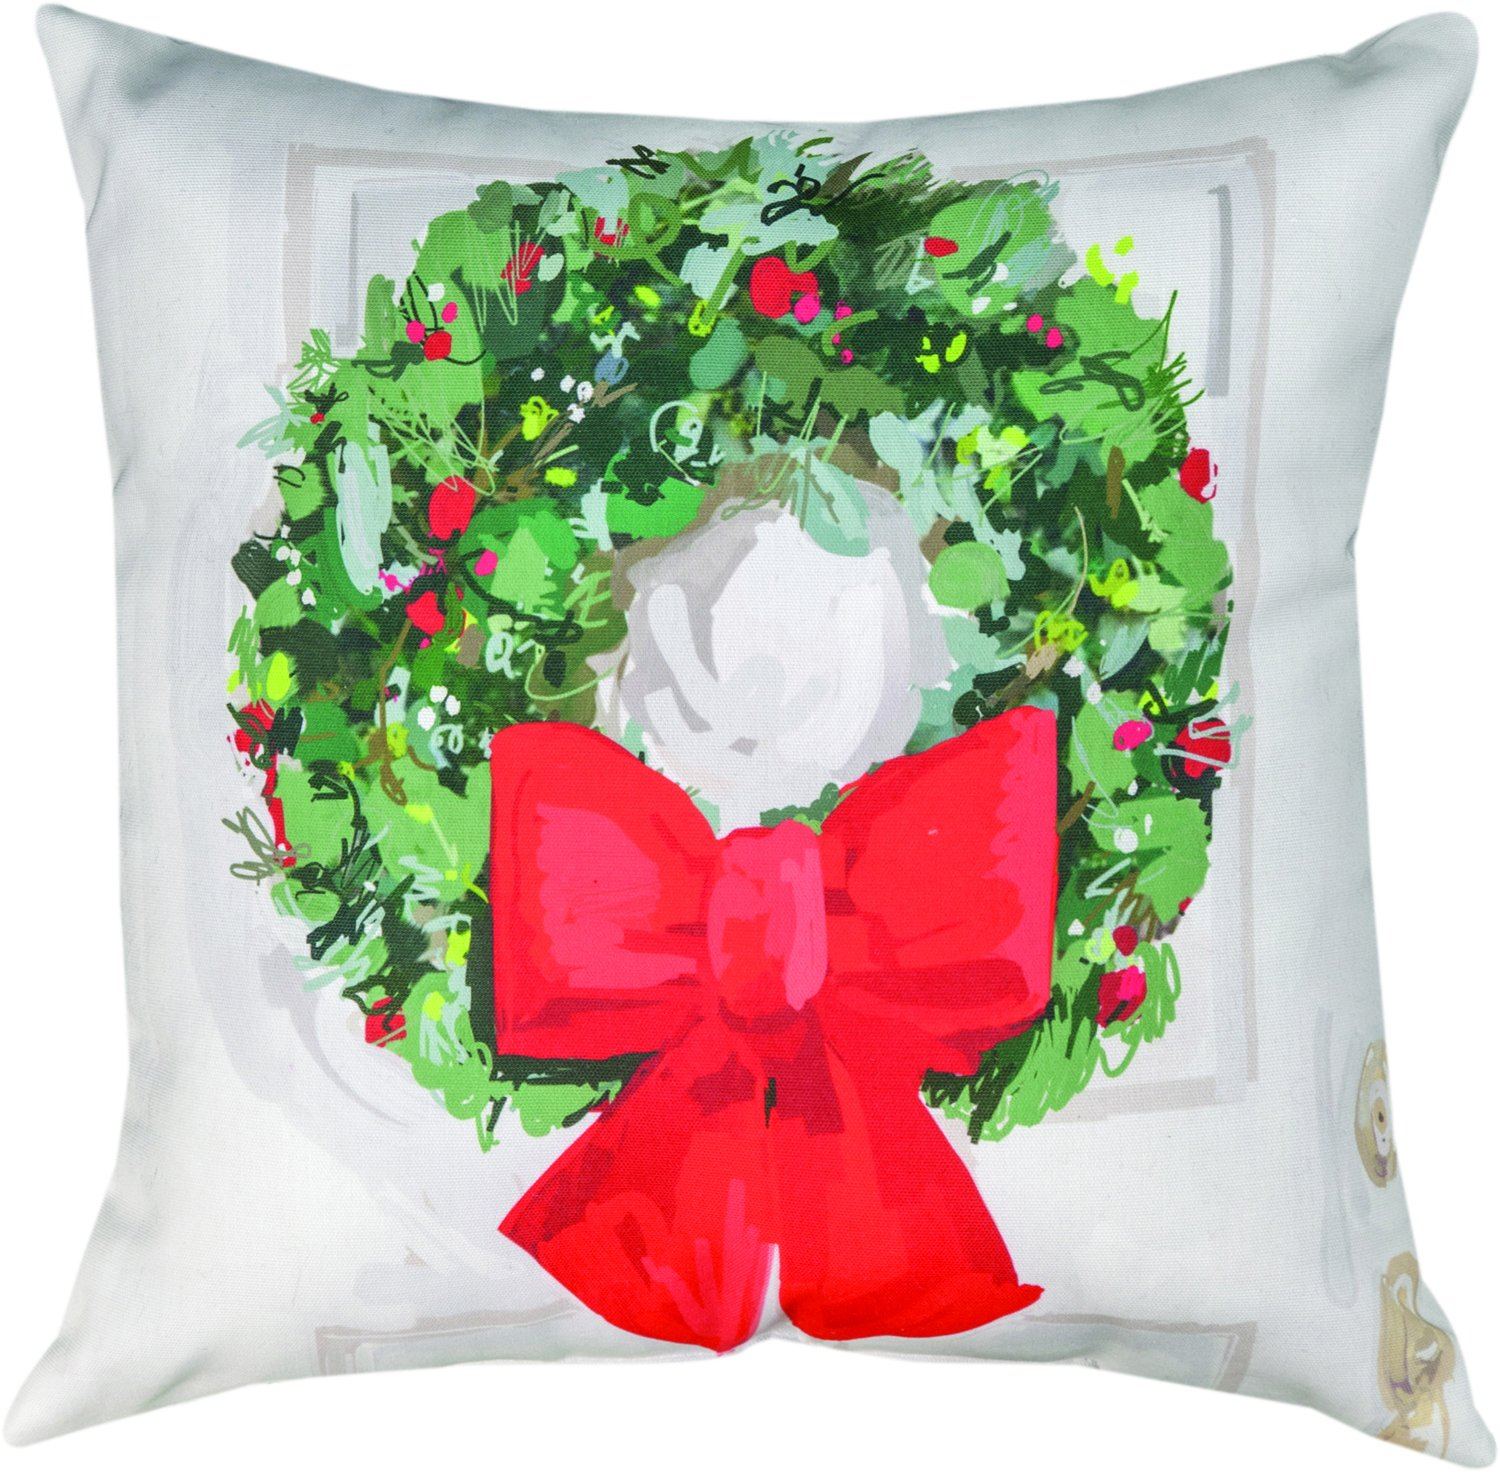 MWW Manual Indoor/Outdoor Throw Pillow, White Christmas Wreath, 18